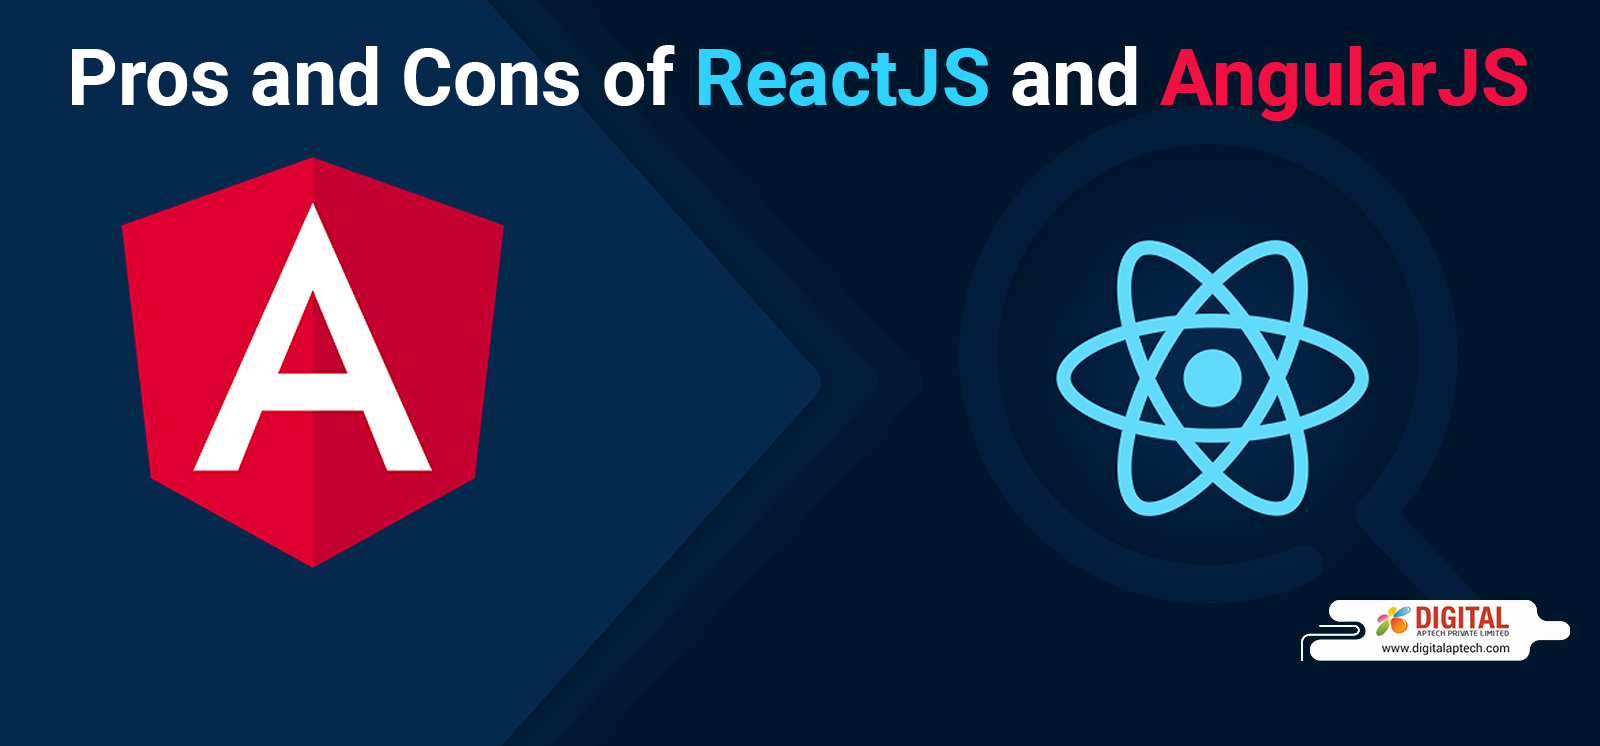 Pros and Cons of ReactJS and AngularJS